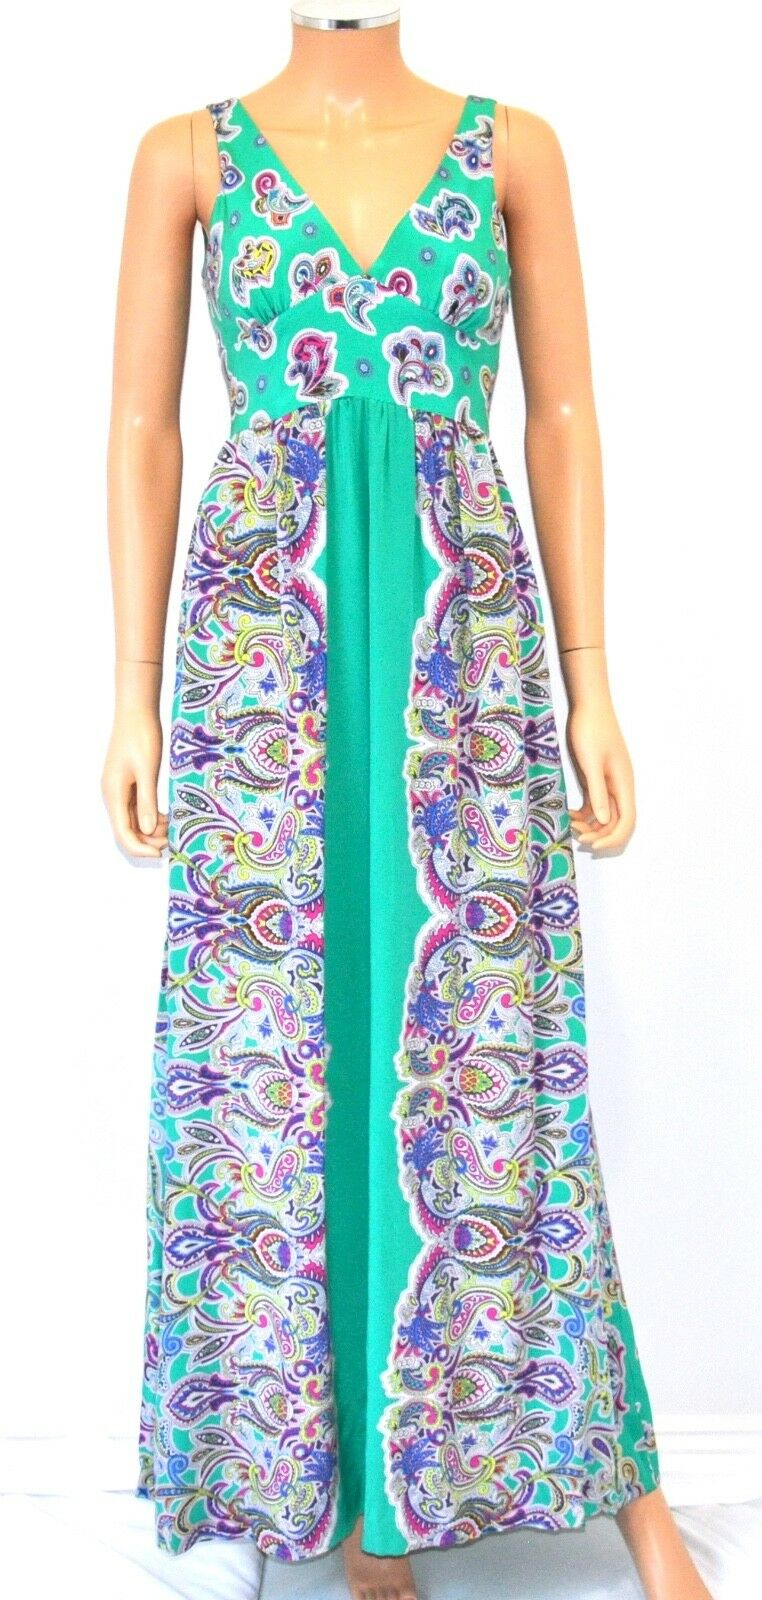 TIBI Floral Paisley 100% Silk Sleeveless Long Maxi Dress - Sz 4, SMALL